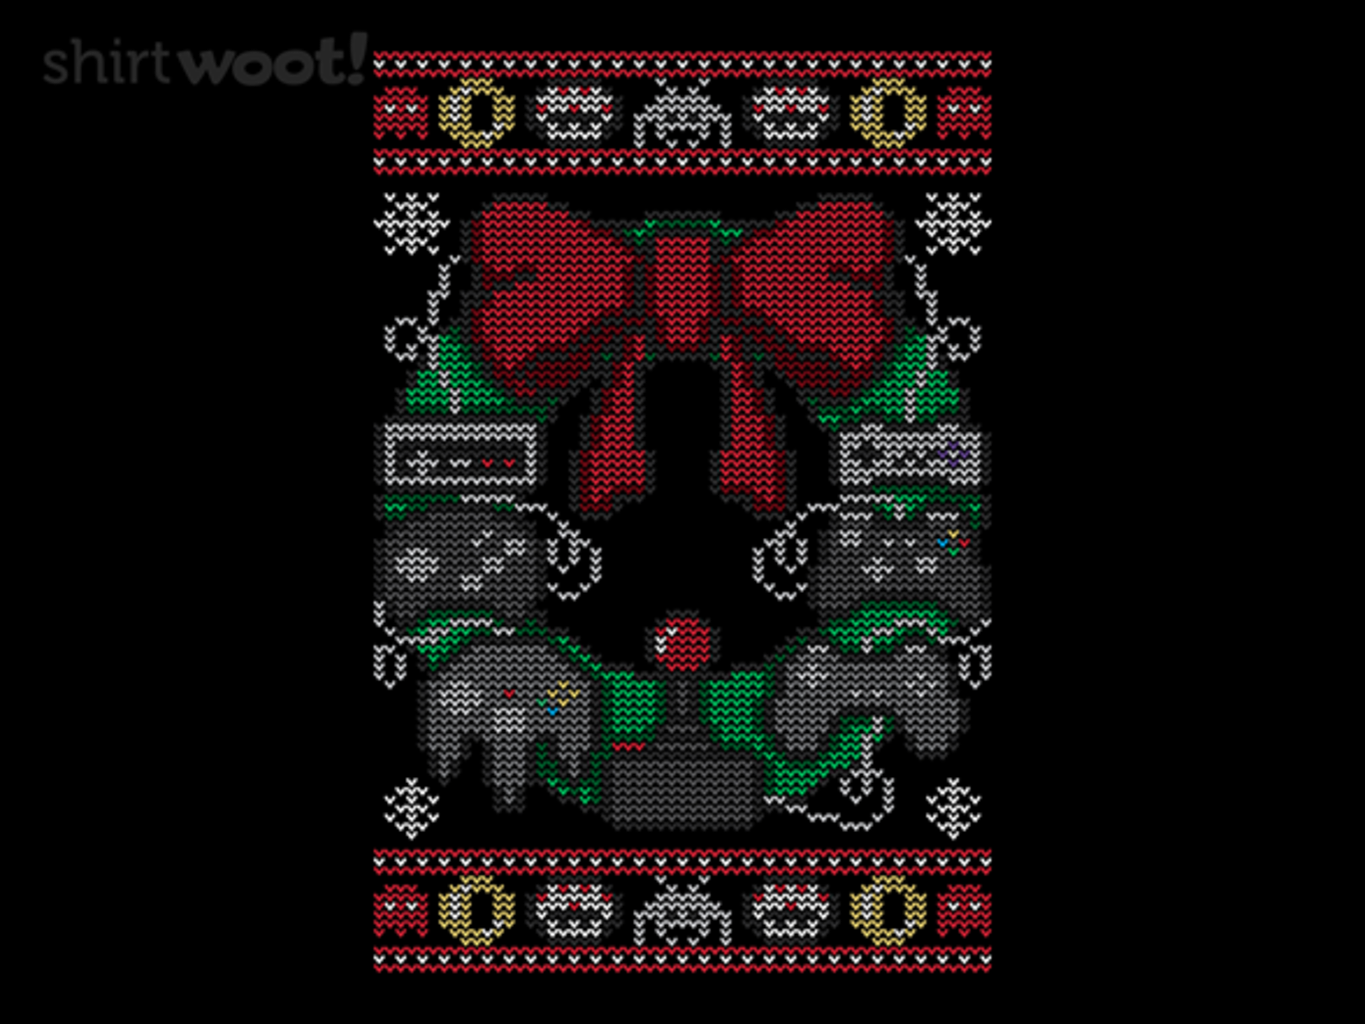 Woot!: A Very Gaming Christmas